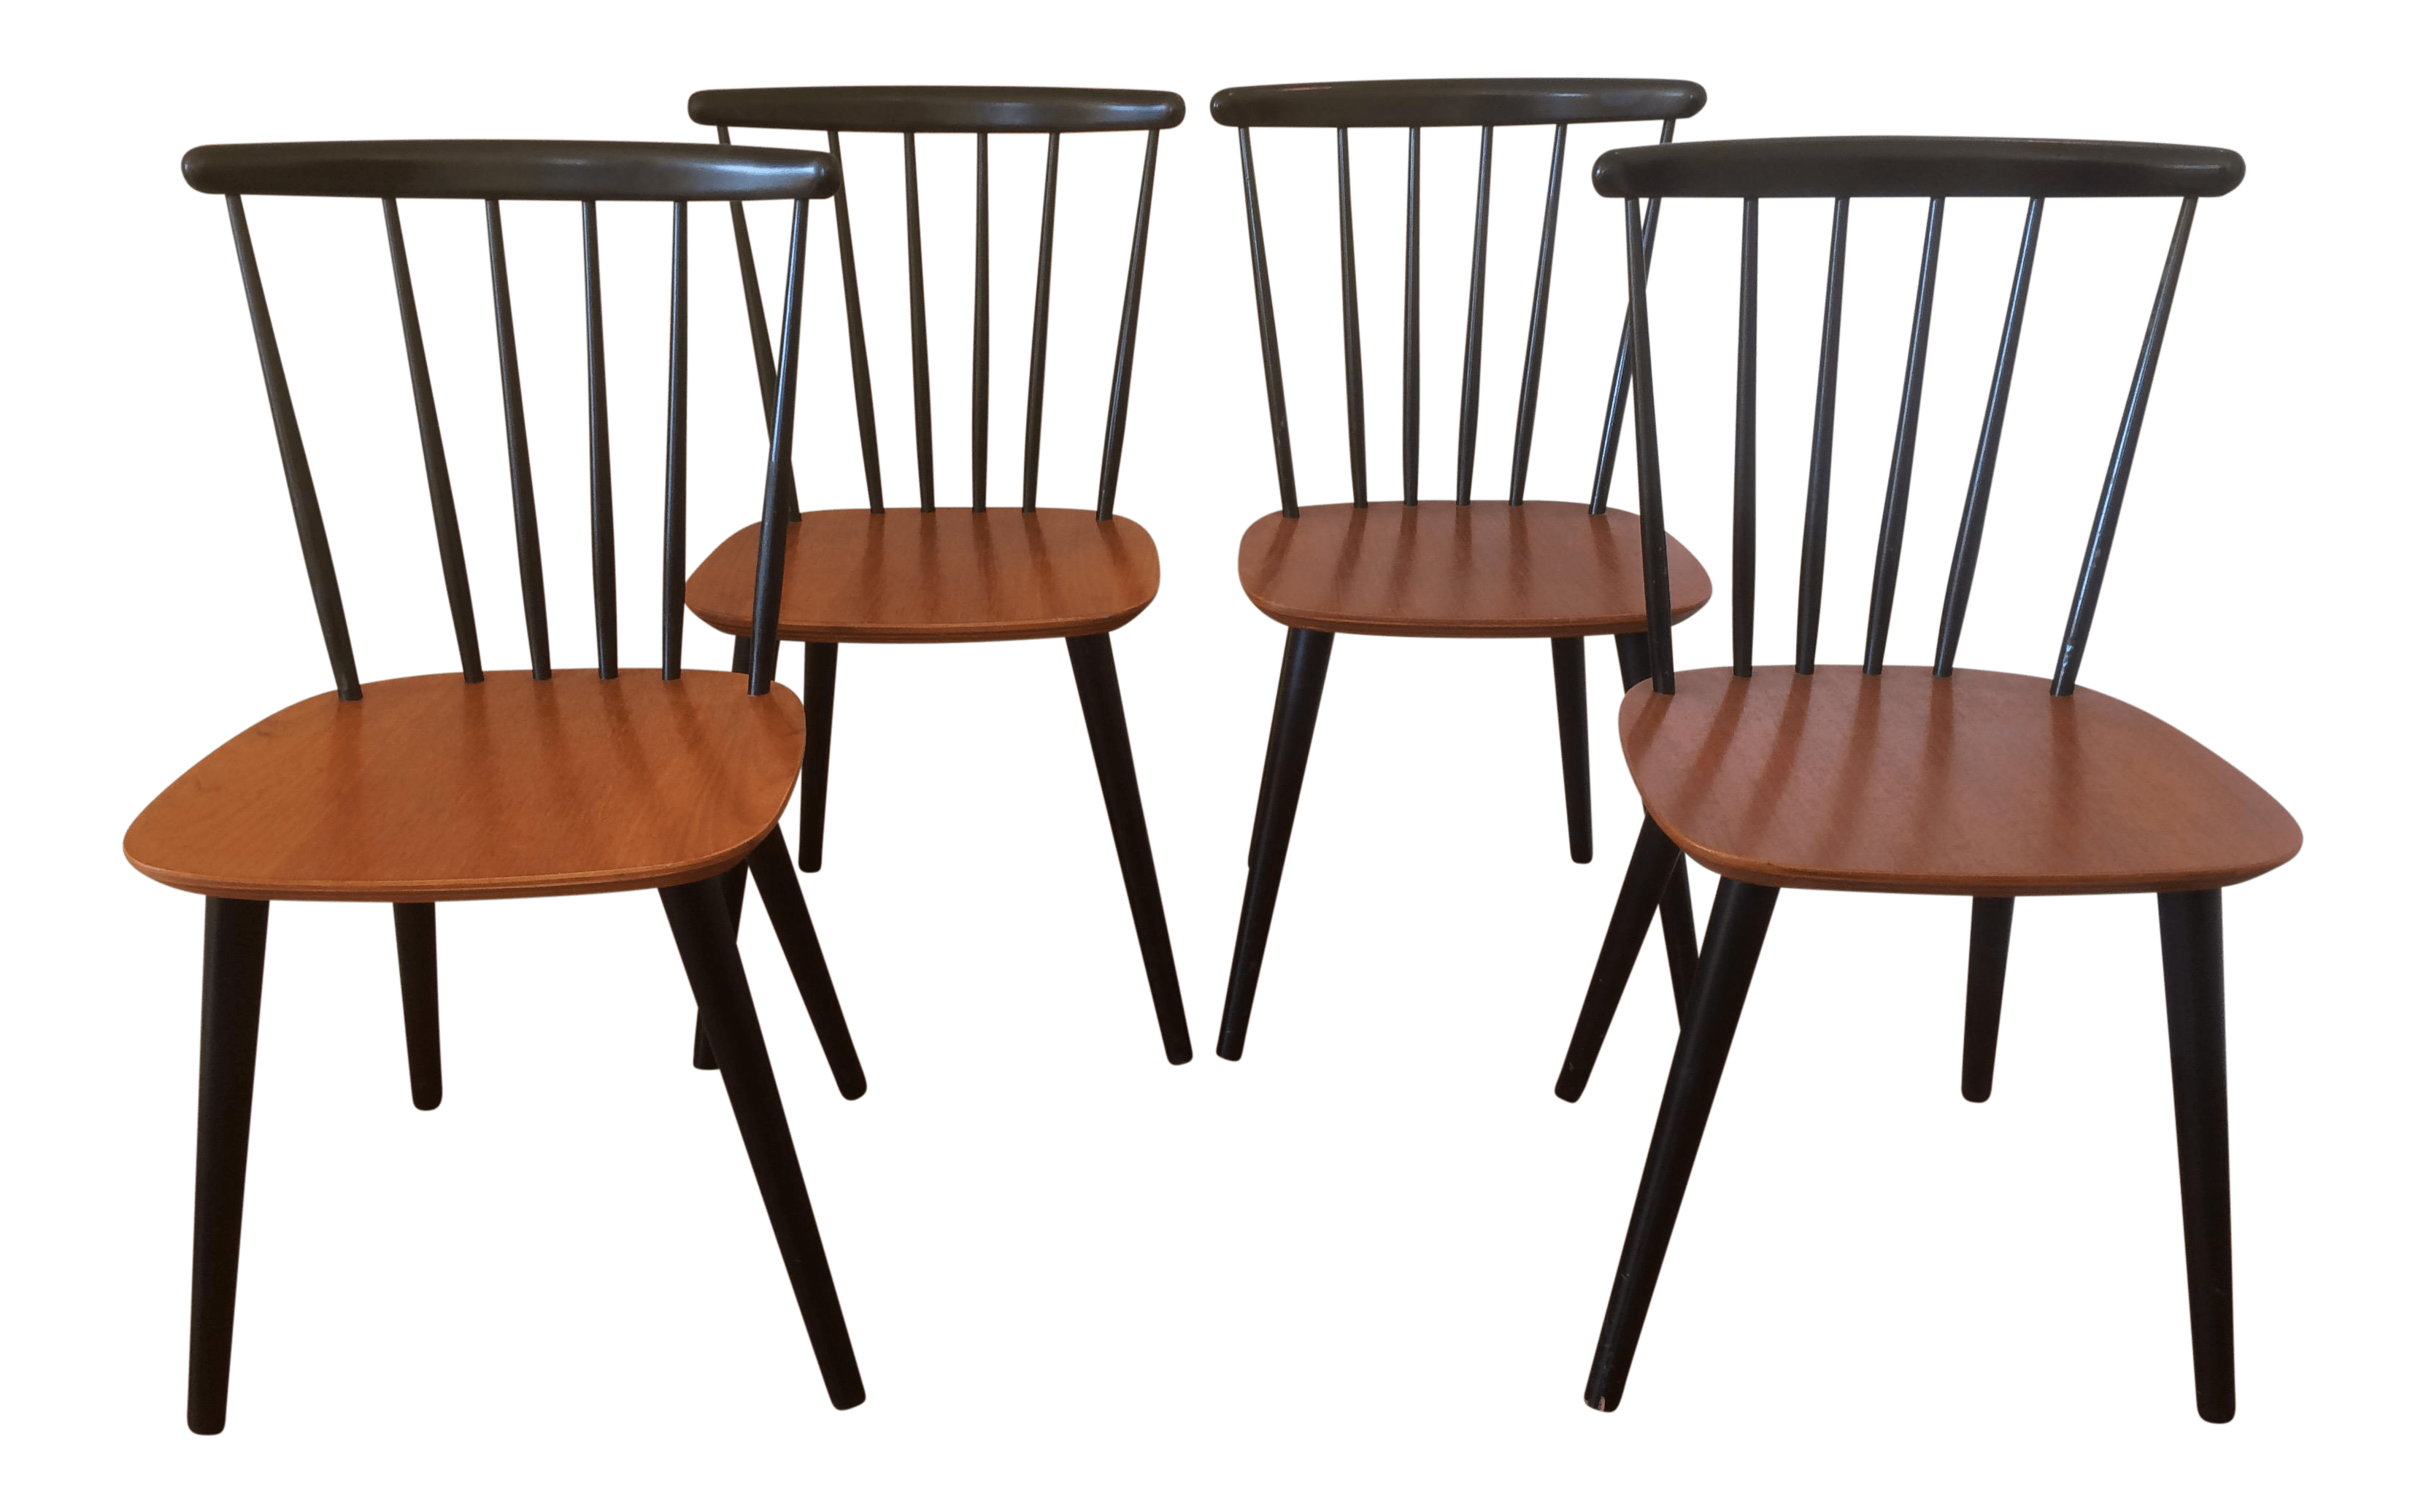 1960s Vintage Farstrup Spindle Back Dining Chairs Set Of 4 Chairish